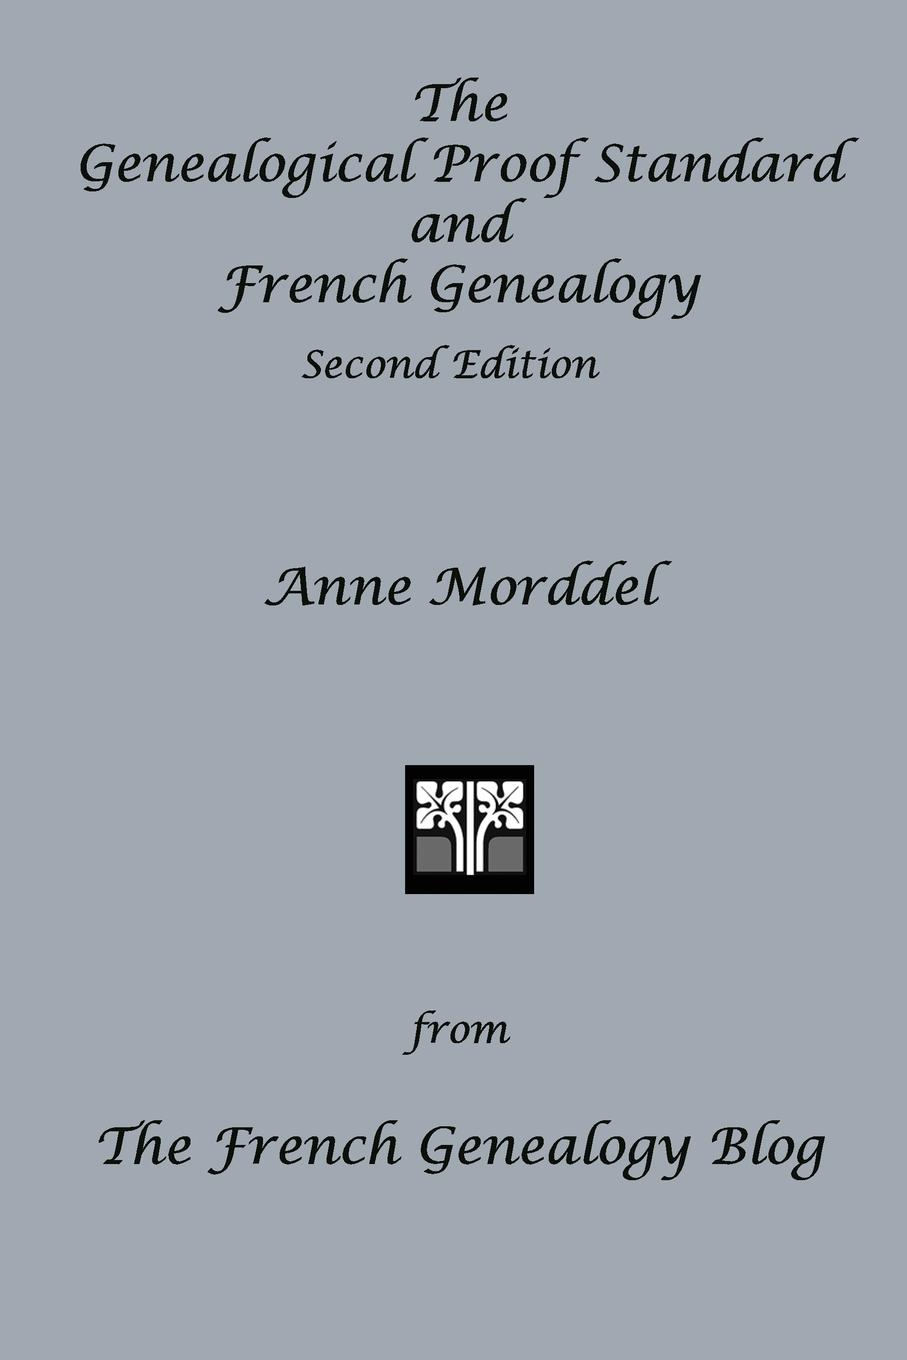 Anne Morddel The Genealogical Proof Standard and French Genealogy Second Edition anne morddel french notaires and notarial records from the french genealogy blog